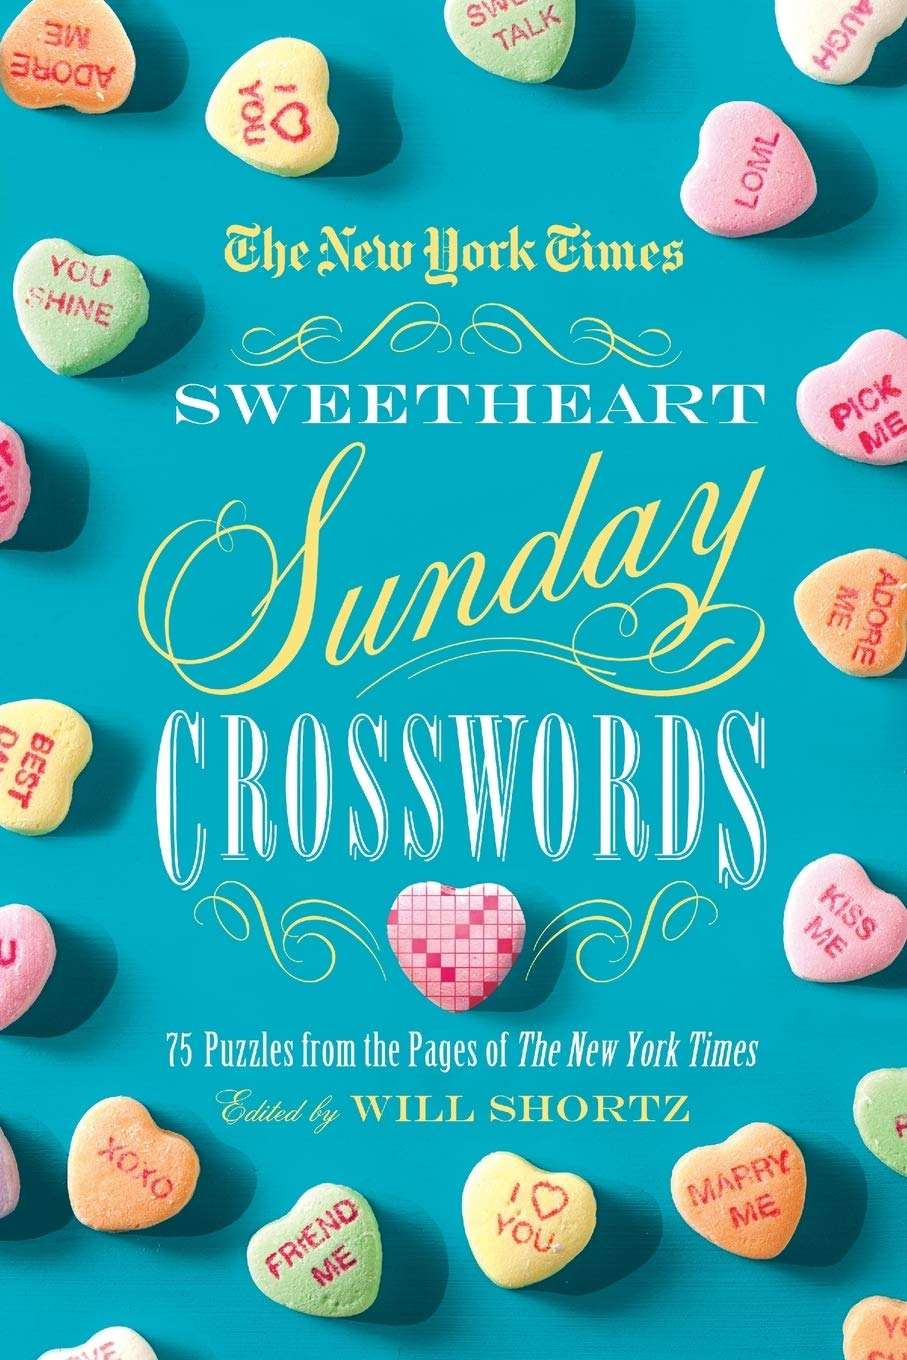 romantic-gifts-for-him-crosswords